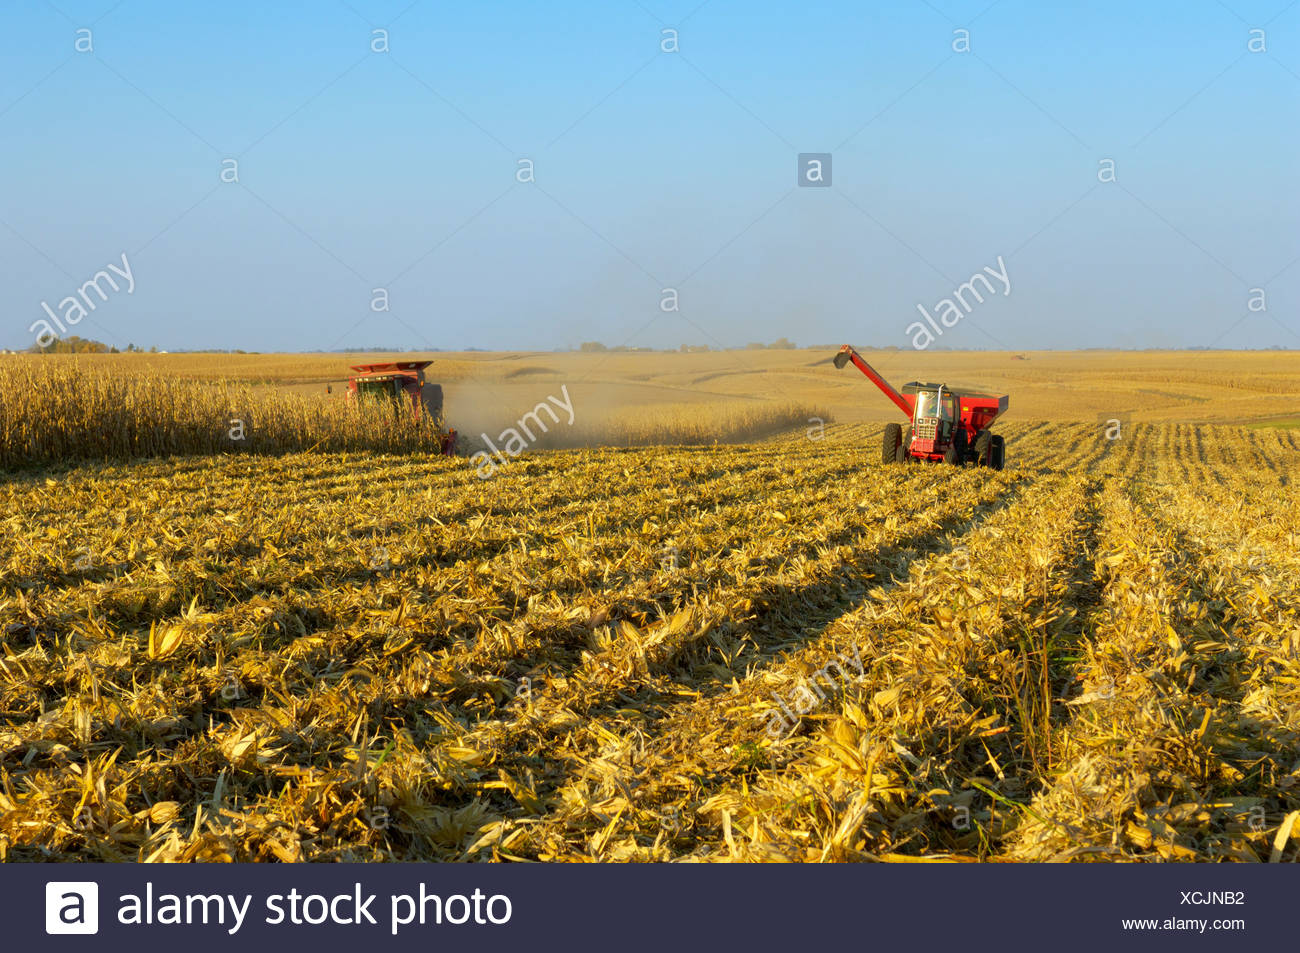 A combine harvests a crop of grain corn in a large grain field, with a grain cart running alongside nearby / Iowa, USA. - Stock Image